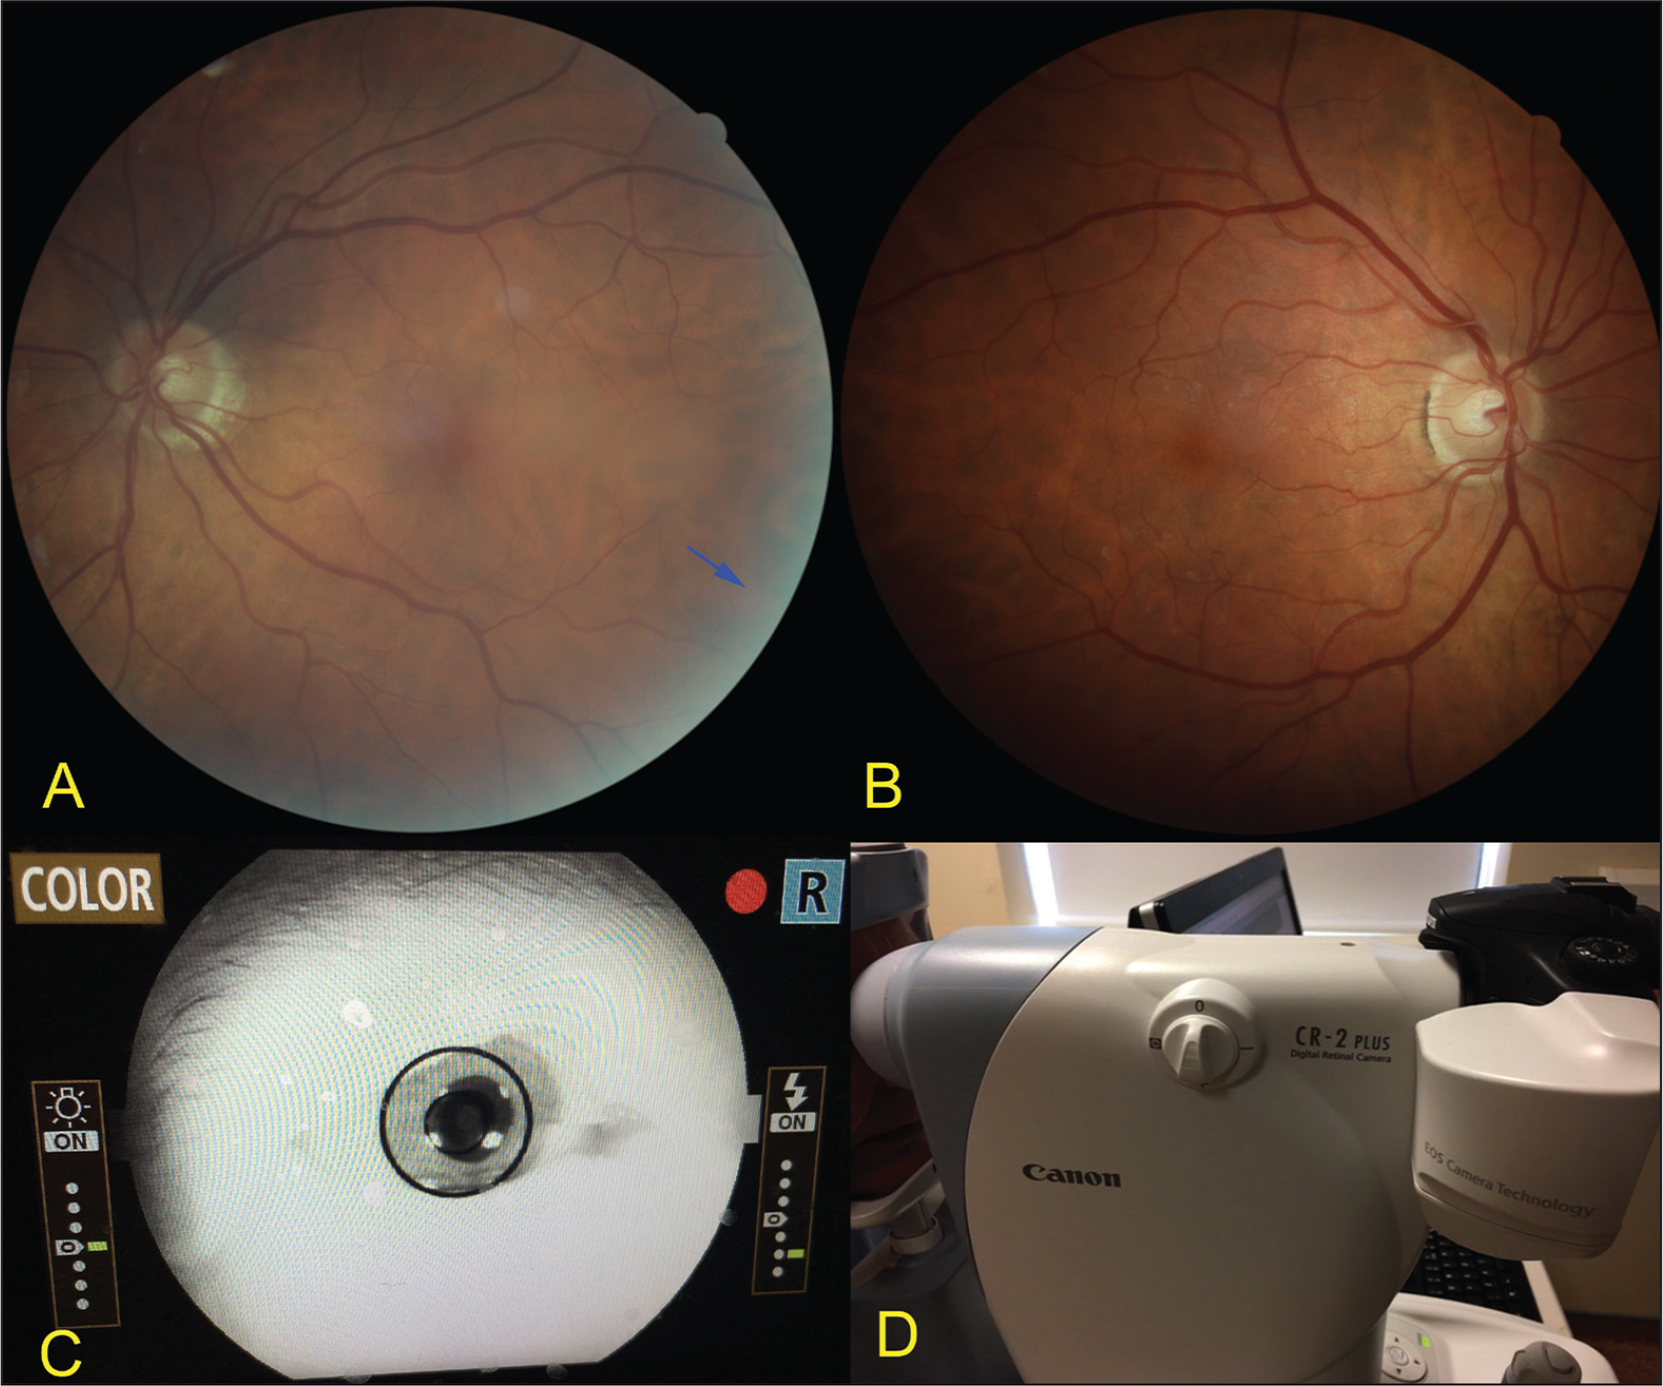 Fundus photographs captured with a non-mydriatic fundus camera. (A) Phakic eye showing paracentral light scatter from the natural lens (blue arrow). (B) Eye with IC-8 small-aperture intraocular lens (IOL) (Acufocus, Inc., Irvine, CA) showing a crisper paracentral image due to the small-aperture IOL blocking the stray light with no compromise of the posterior pole view. (C) Anterior segment view through the fundus camera showing the small-aperture IOL. (D) Side profile view of the non-mydriatic fundus camera.